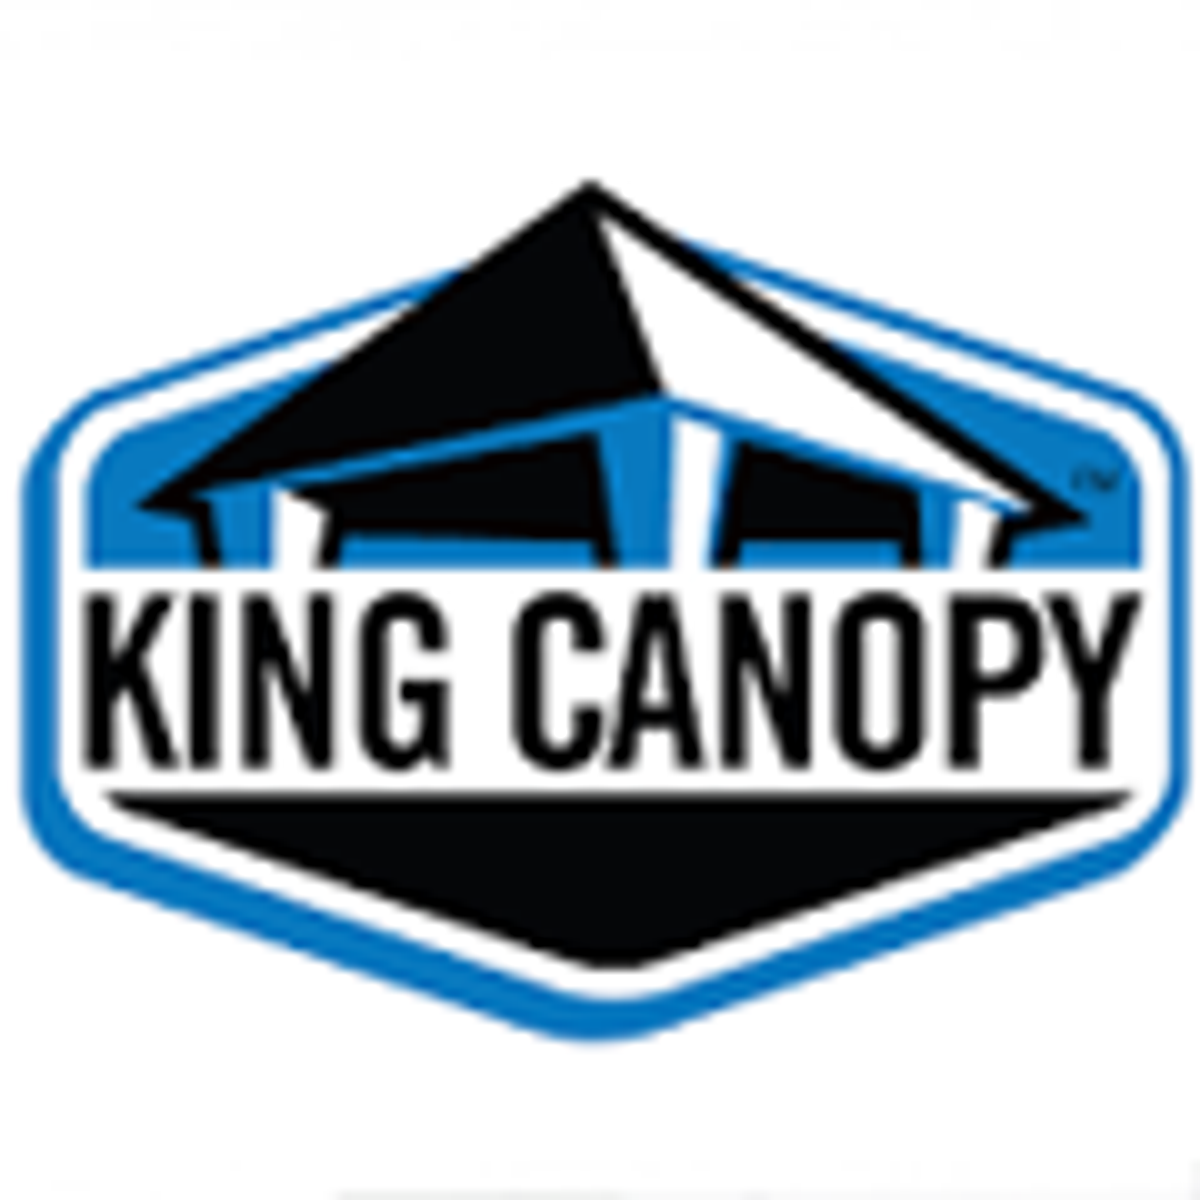 King Canopy